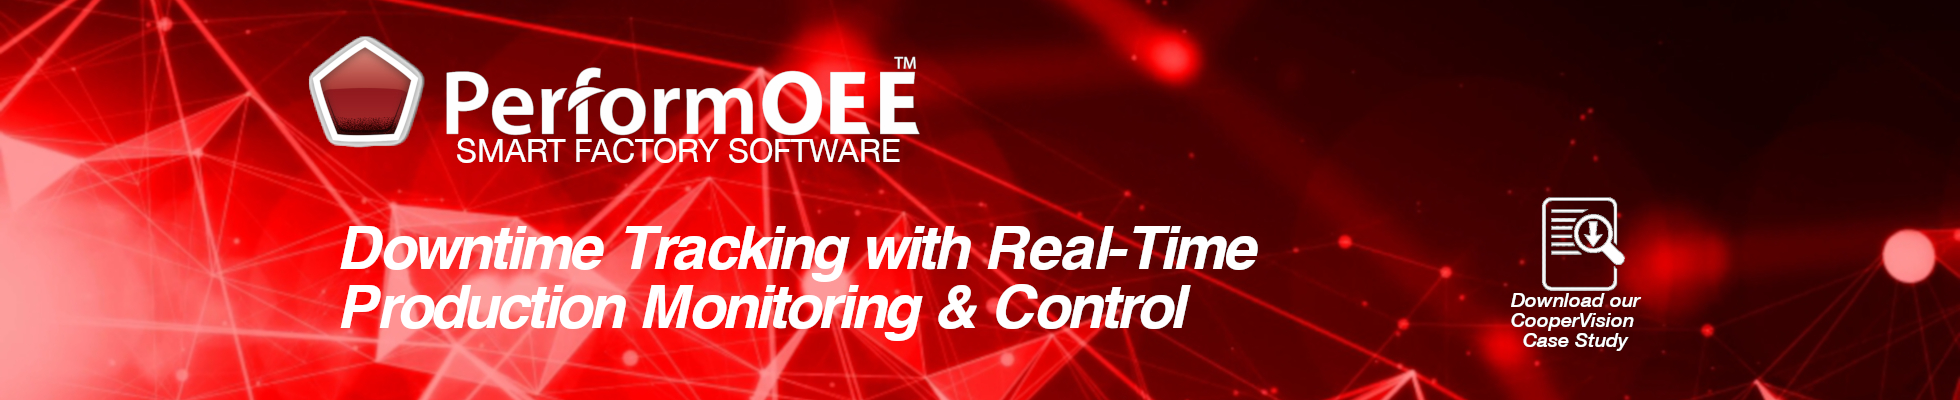 Downtime Tracking with Real-Time Production Monitoring and Control | PerformOEE | OEEsystems